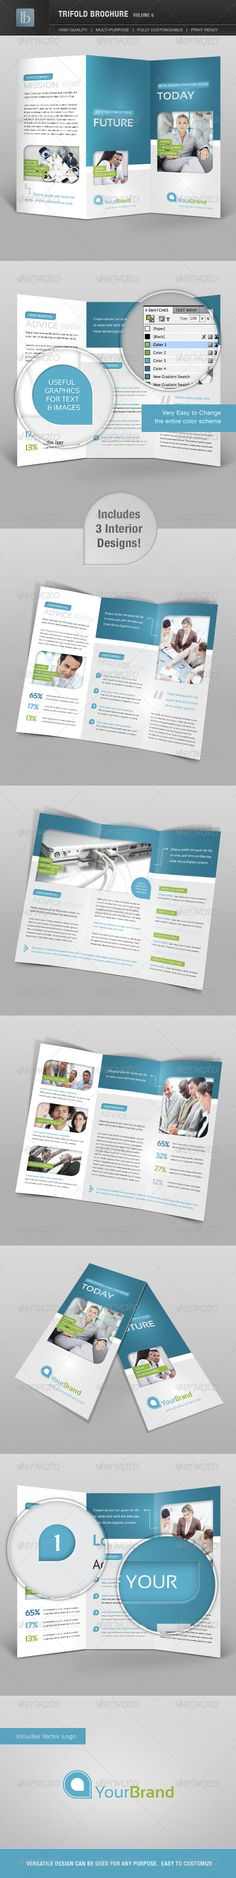 Trifold Brochure | Volume 6 - GraphicRiver Item for Sale